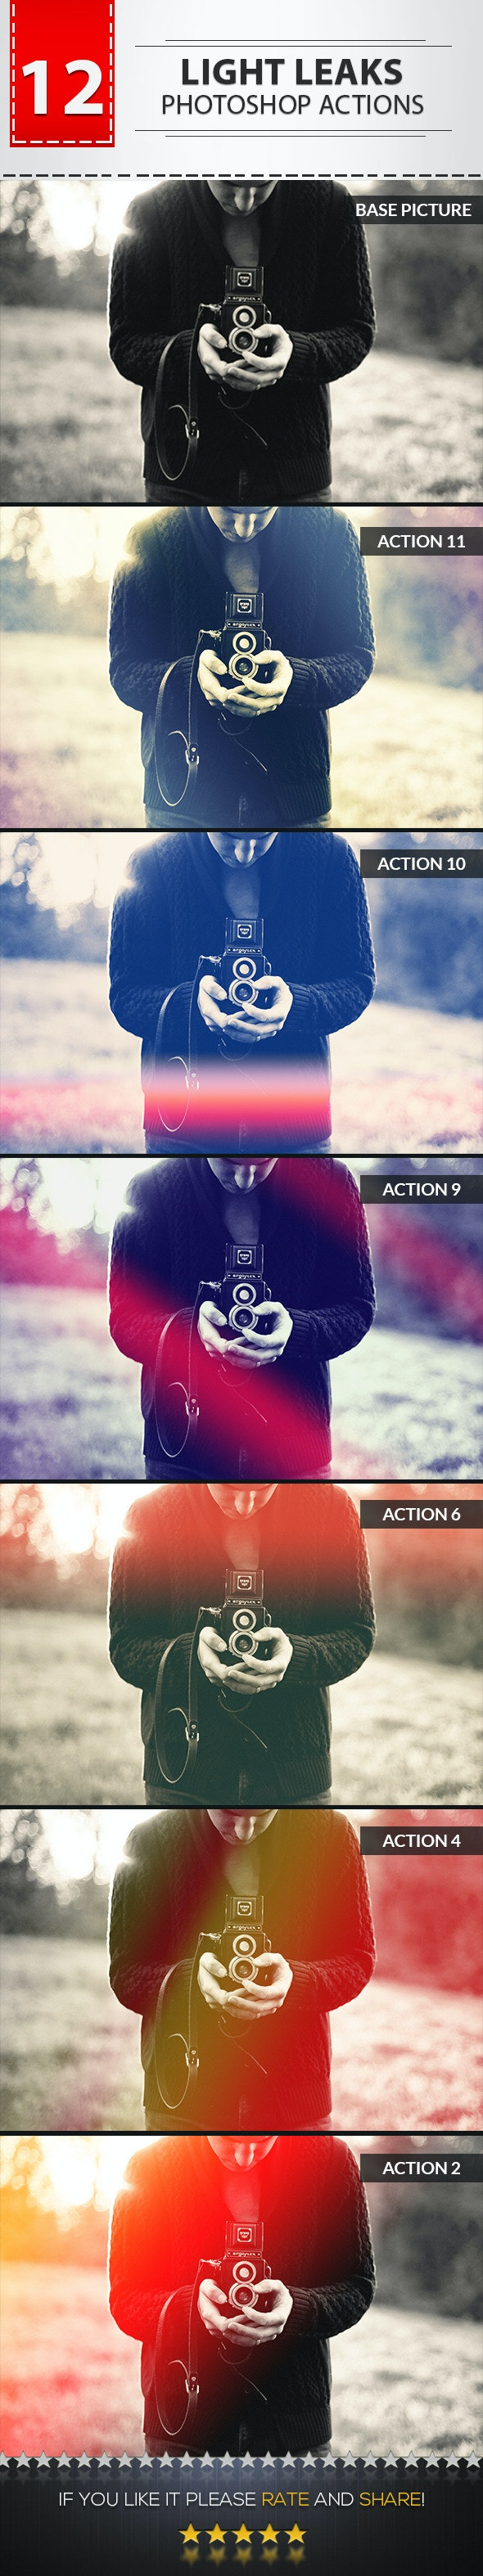 12 Light Leaks Photoshop Actions - Photo Effects Actions